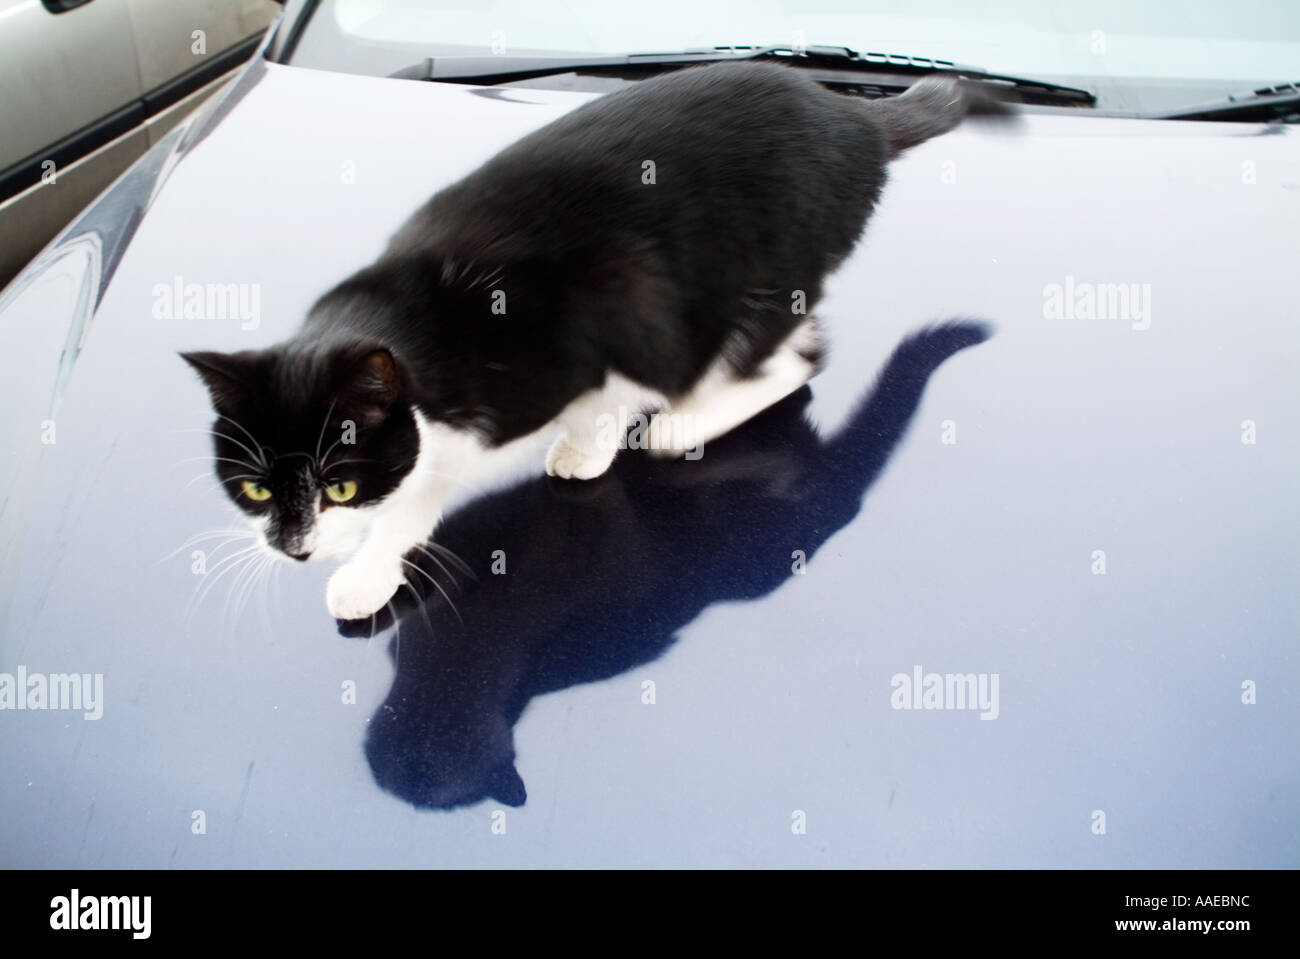 Cat sitting alone on a car roof - Stock Image